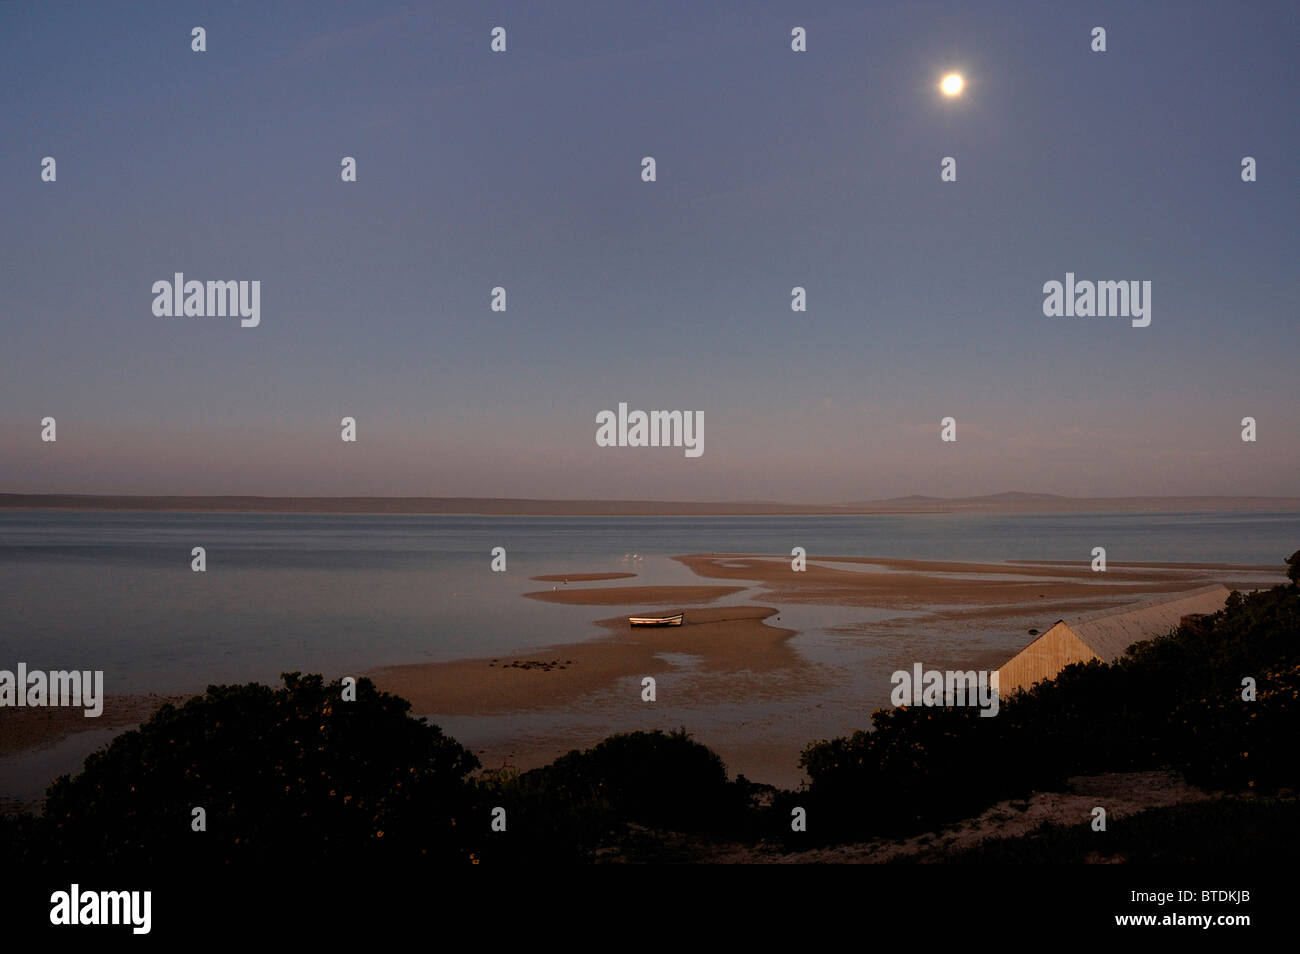 Sunset over the lagoon at Churchaven with full moon - Stock Image